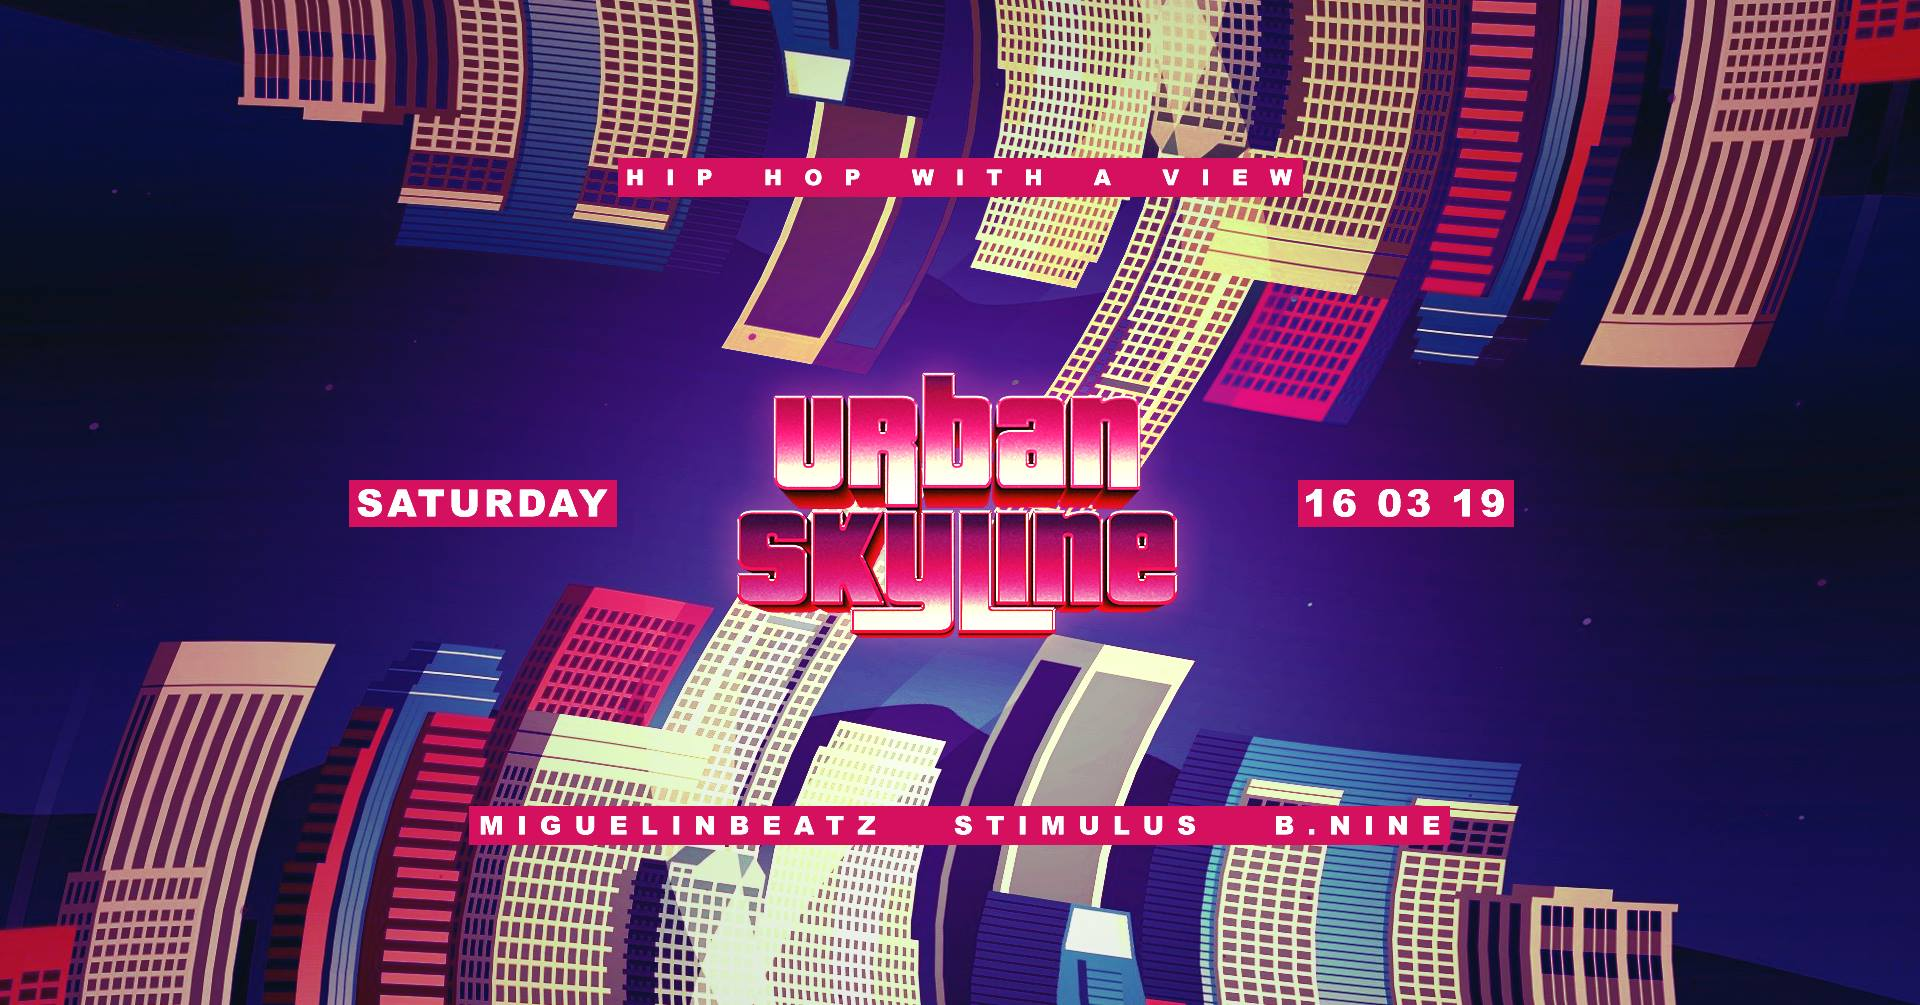 Urban Skyline  - Hip Hop With A View  We call it ,highest turn up in town'  Once a month we invite people to our Family & Friends meet up in our loving living room and they know what is expecting them. Greatest view over the City with bomb turn up vibes. We create an interaction with people on the dance floor and the DJ.